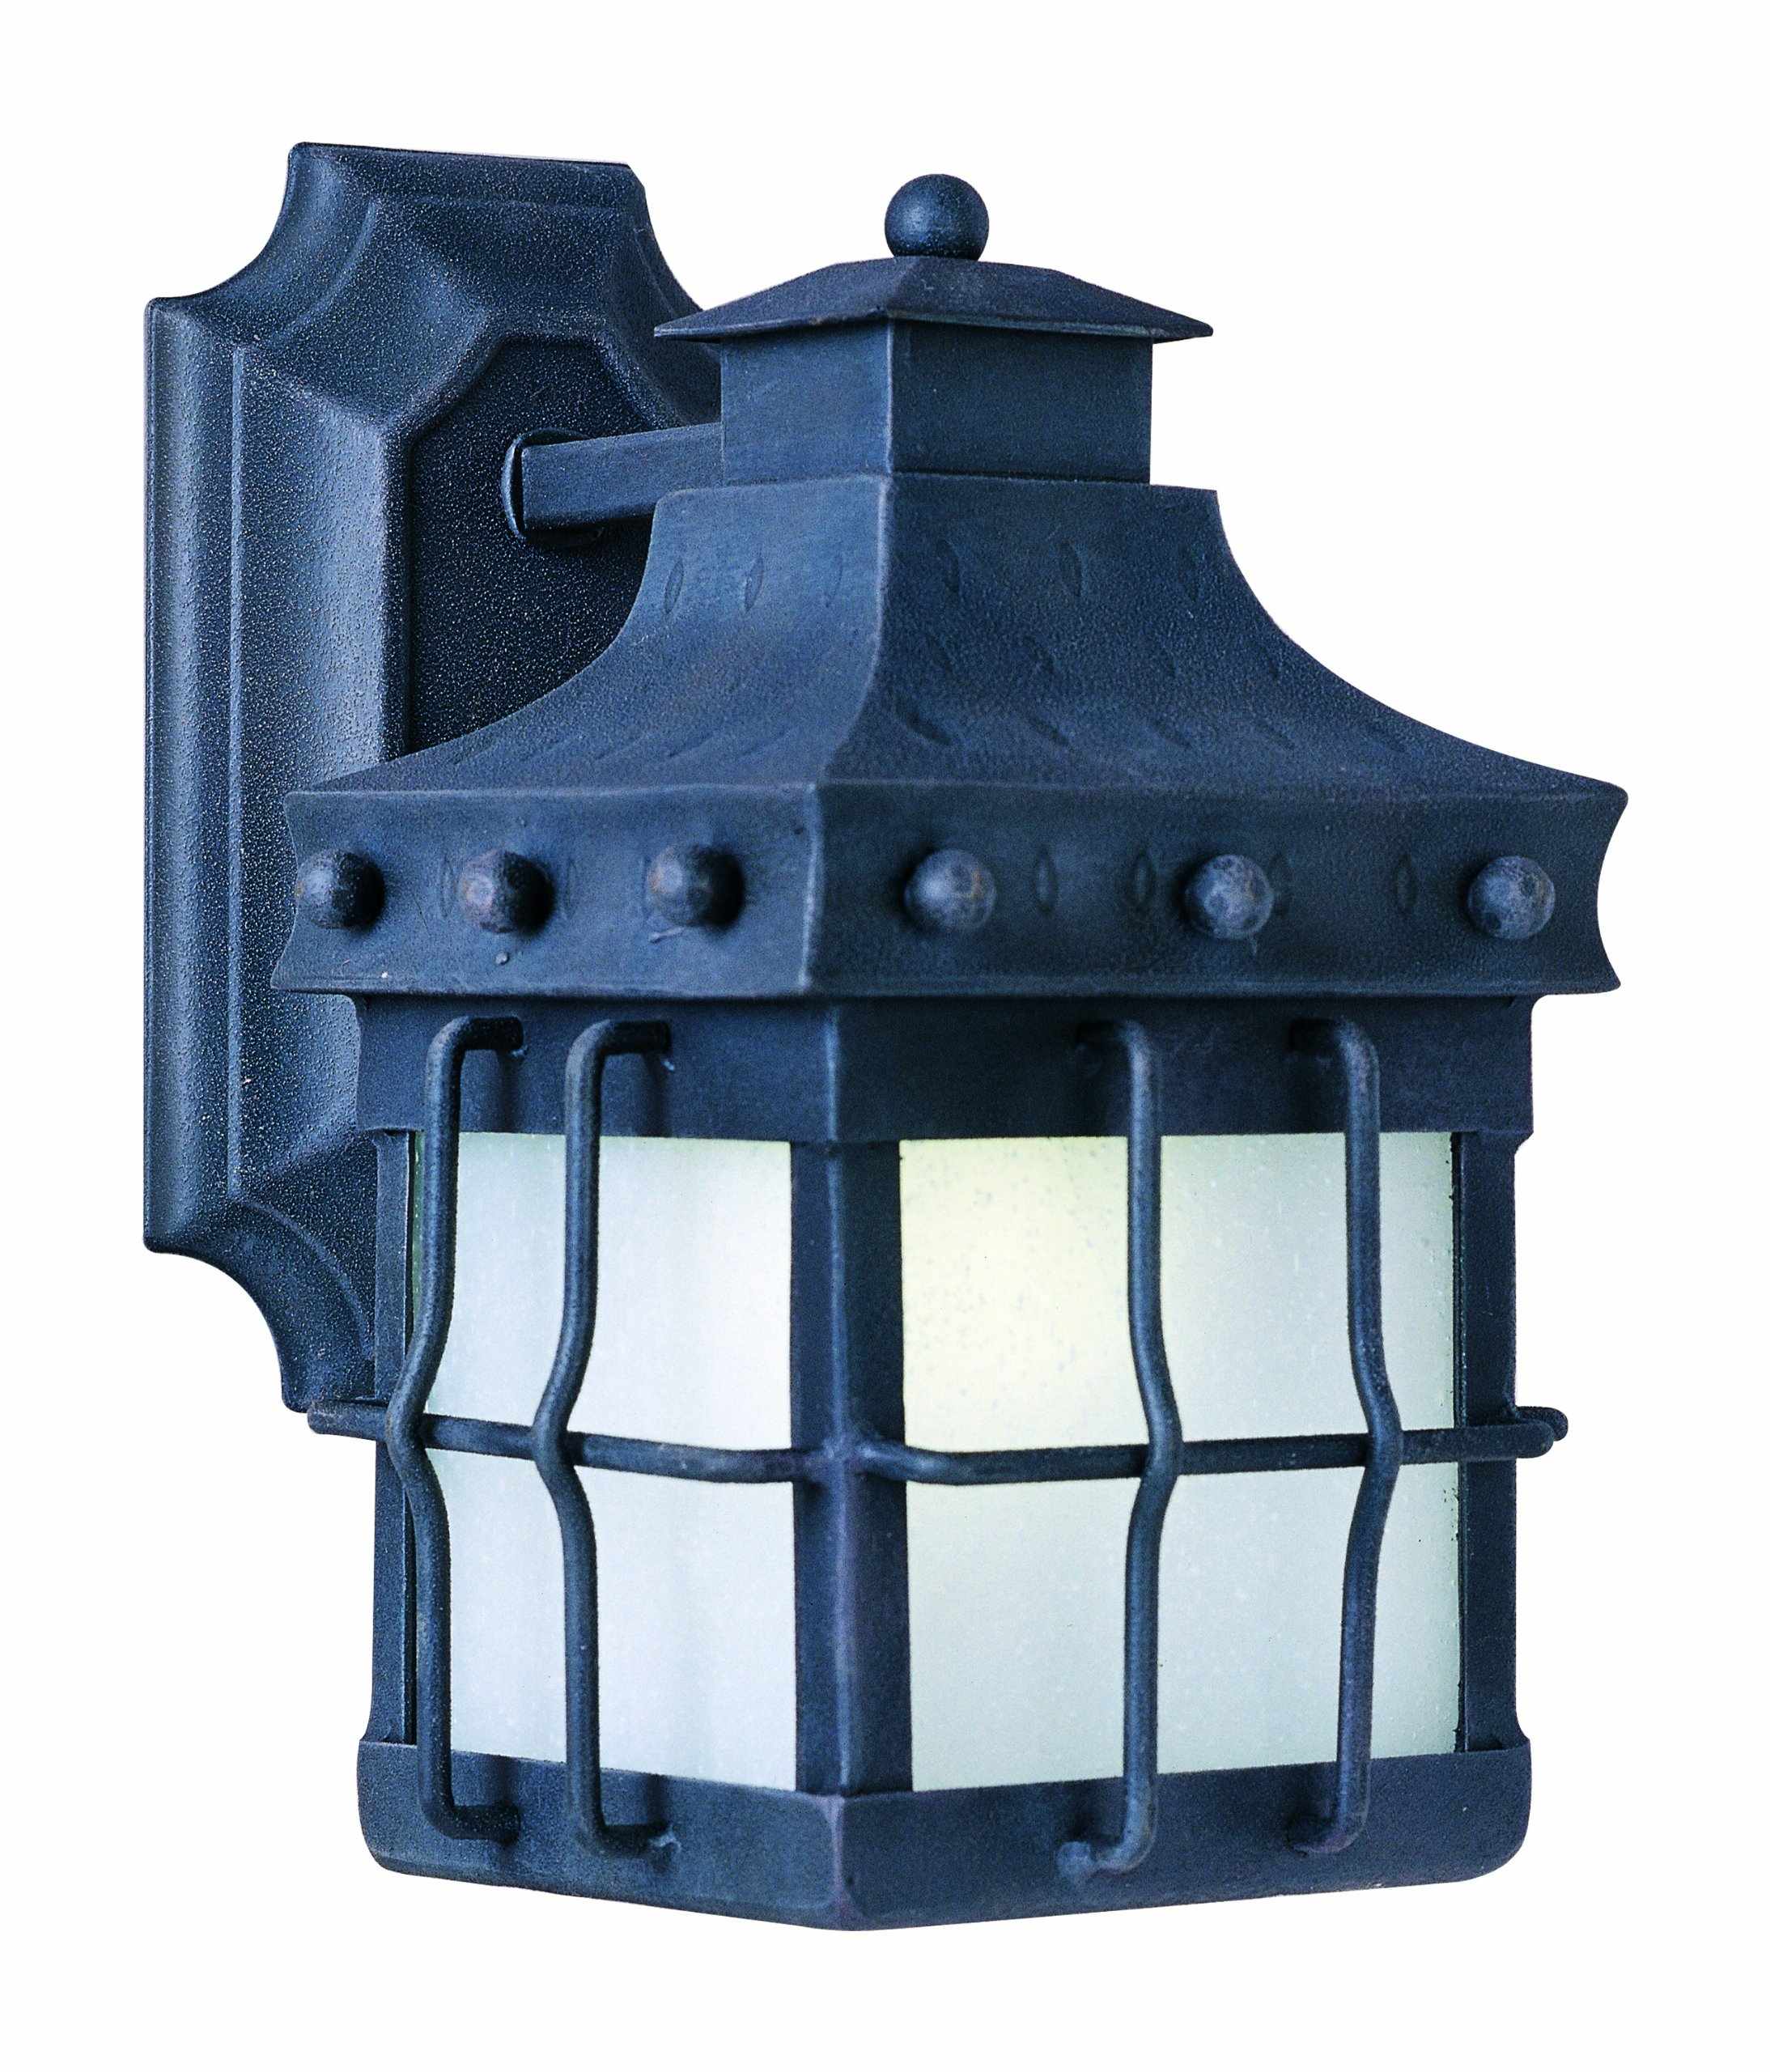 Maxim 86081FSCF Nantucket EE 1-Light Outdoor Wall Lantern, Country Forge Finish, Frosted Seedy Glass, GU24 Fluorescent Fluorescent Bulb , 60W Max., Wet Safety Rating, Standard Dimmable, Glass Shade Material, 1344 Rated Lumens